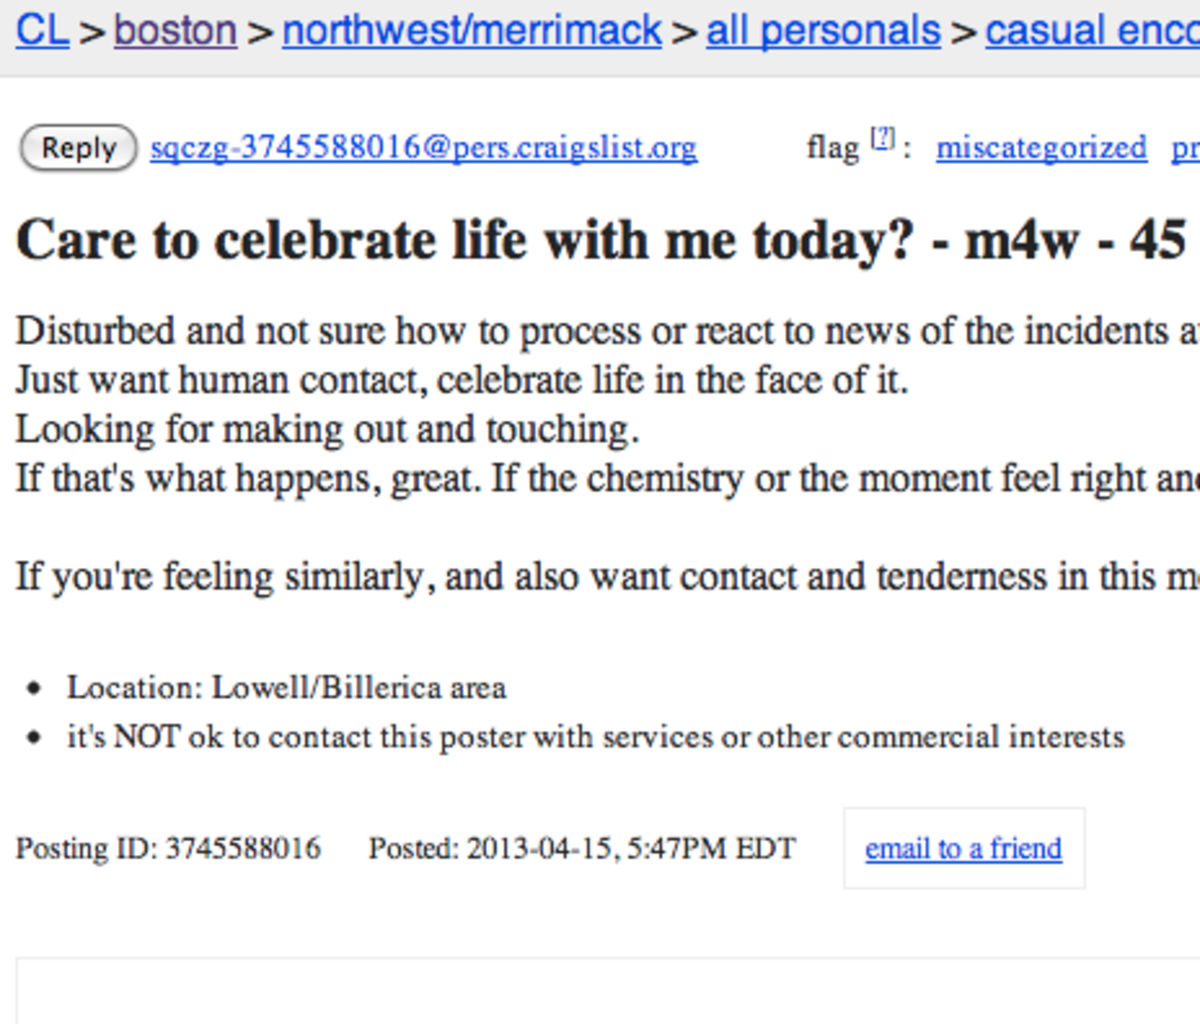 People In Boston Place Sex Ads On Craigslist Org Using The Bombing